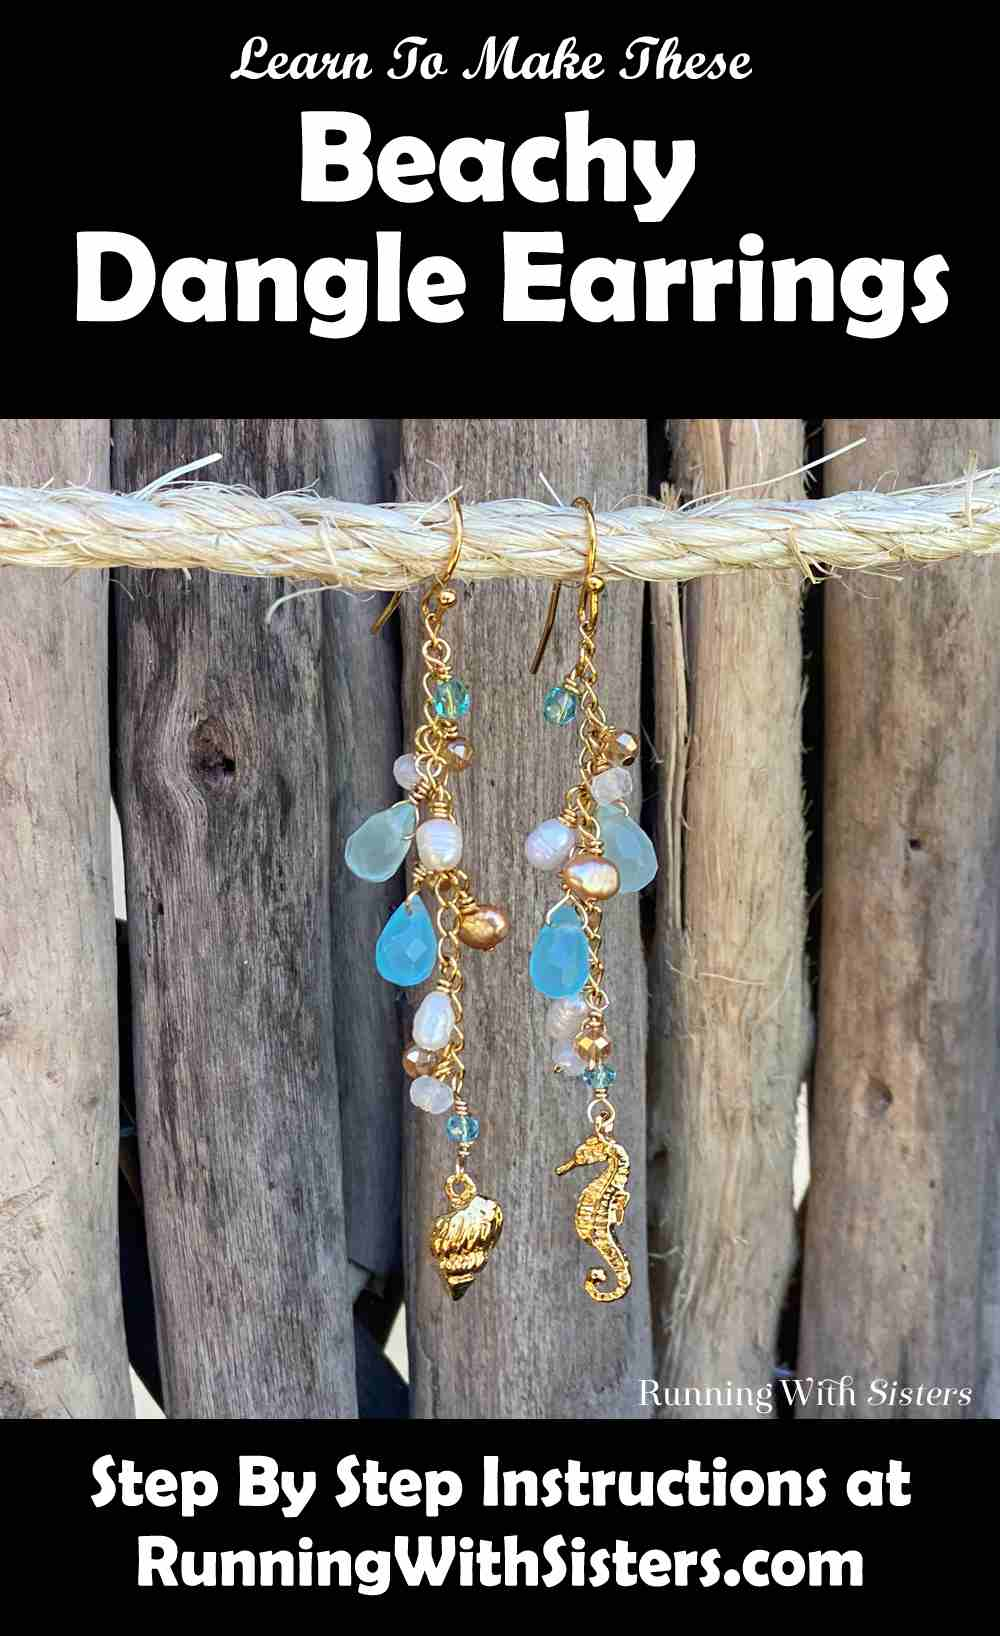 Beachy Dangle Earrings Pinterest